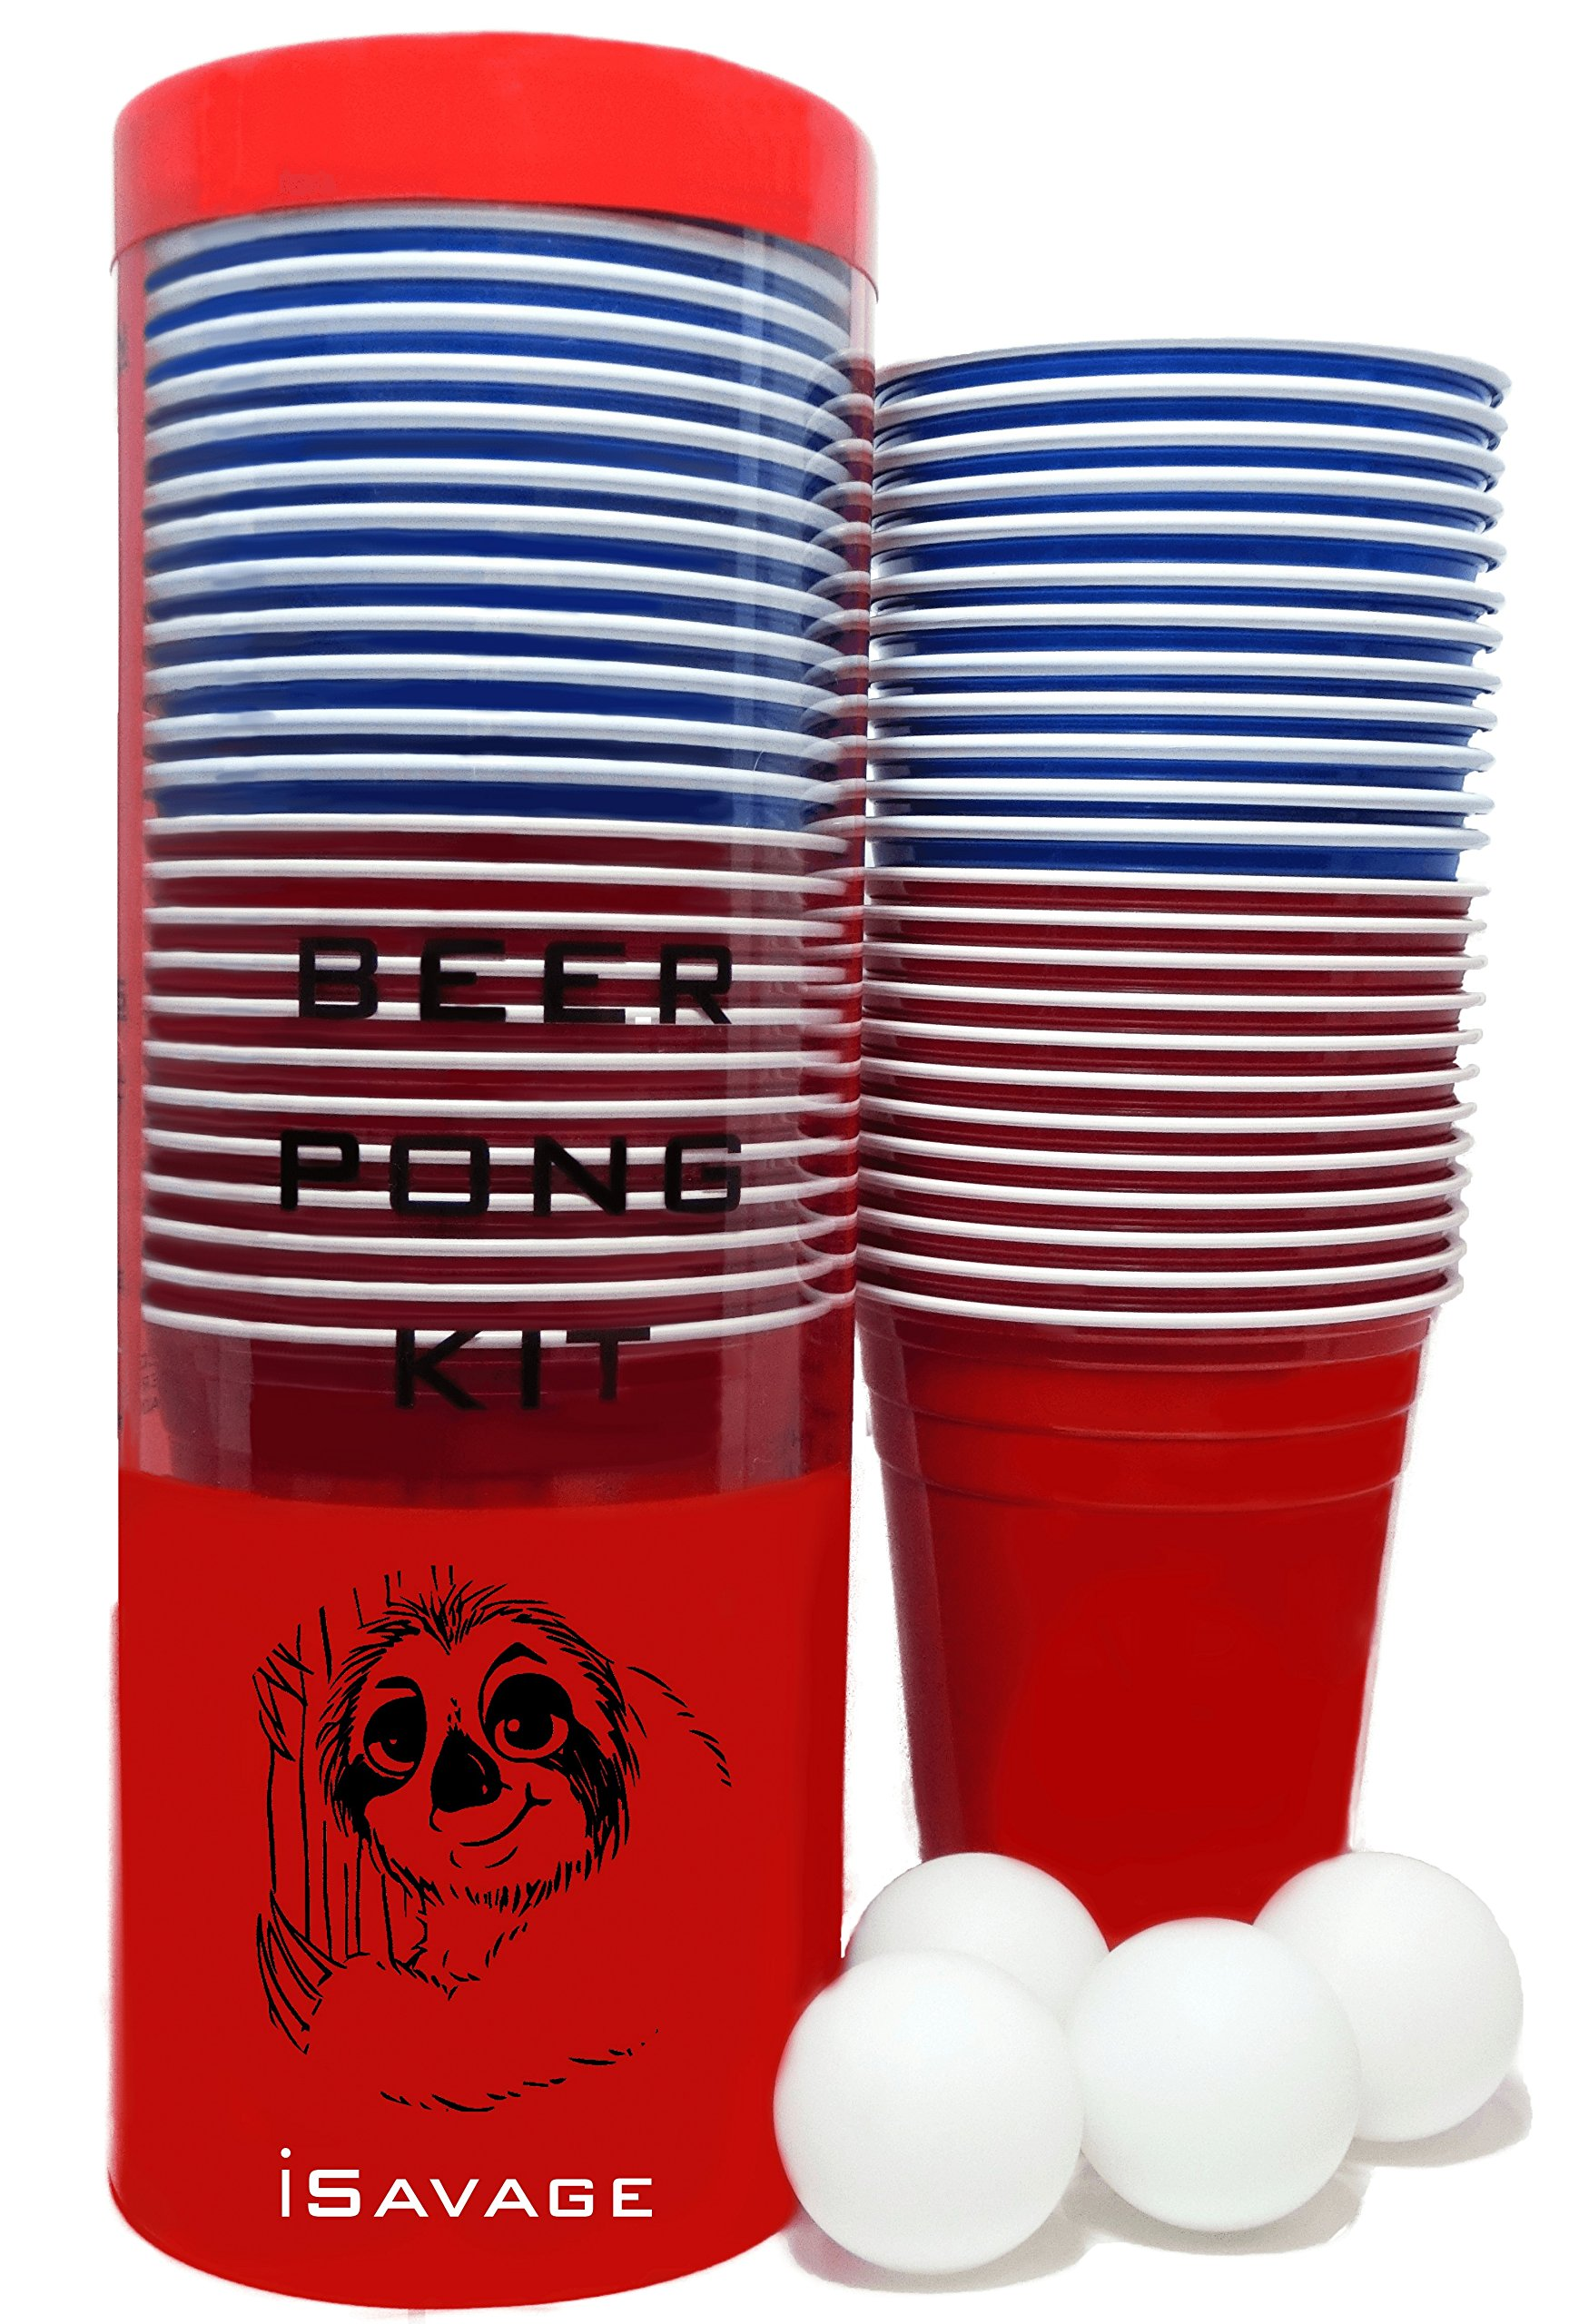 iSAVAGE Beer Pong Set - 24 Red & Blue 16oz Plastic Cups, 4 White Beer Pong Balls with Instructions | Sloth | Indoor & Outdoor Events | Classic Adults College Drinking Game - Portable Party Kit